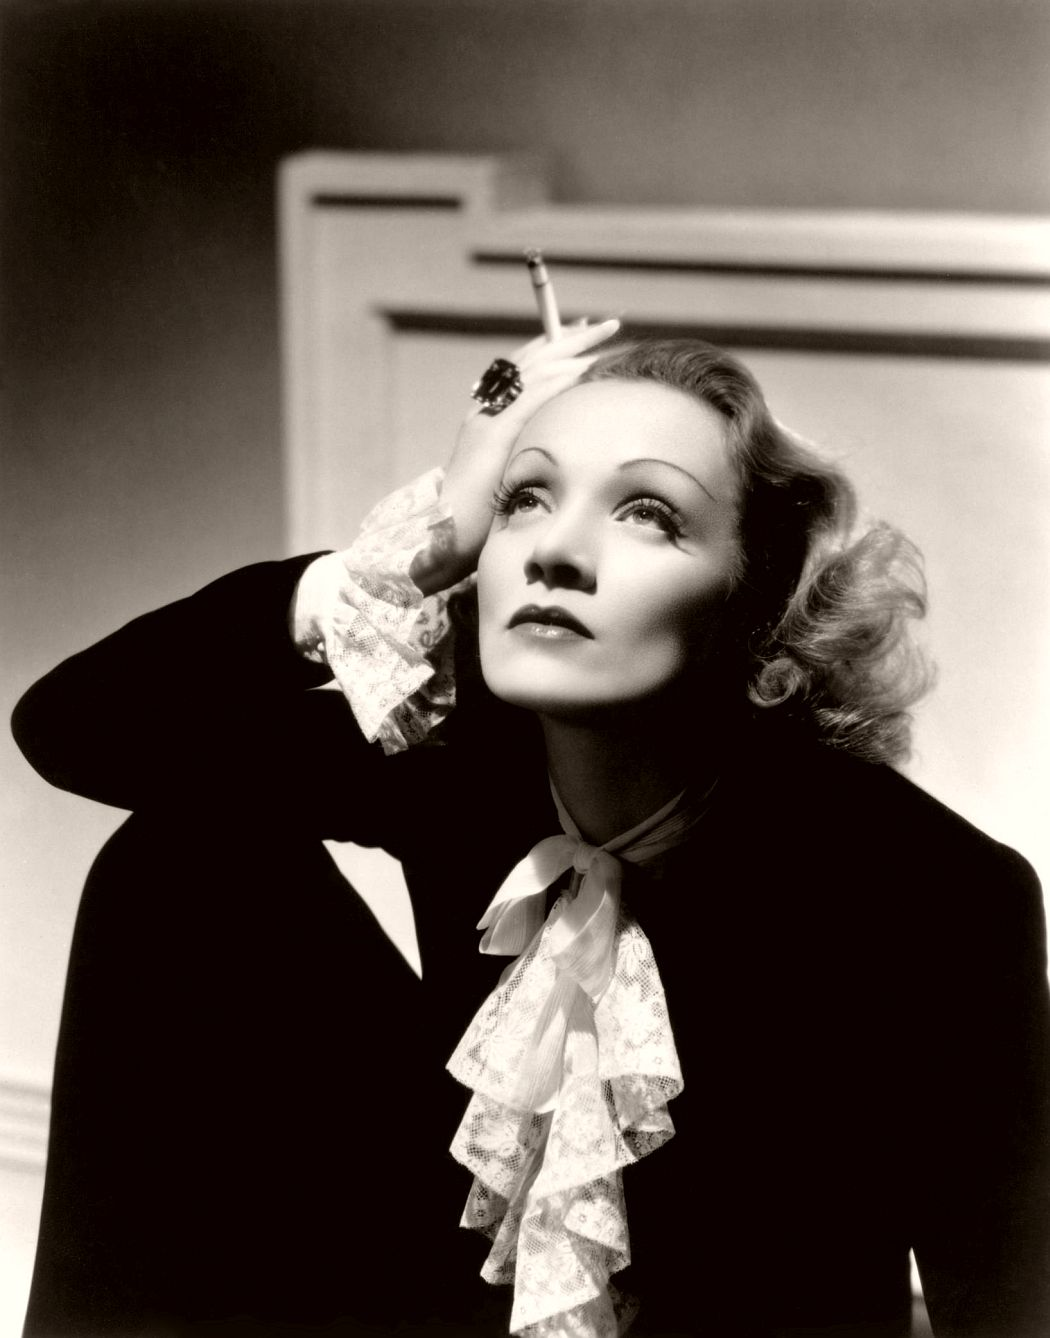 Another actress who defied the pressures of Hollywood was Marlene Dietrich who is famous (among other things) for saying: 'I dress for myself. Not for the image, not for the public, not for fashion, not for men.' While also a fan of the humble ball gown, Marlene became the first famous woman in history to rock a tuxedo, with Angelina Jolie and co. taking suit (pun intended) all these years later. We applaud you, Marlene. 1930s fashion trends truly wouldn't have been the same with her.